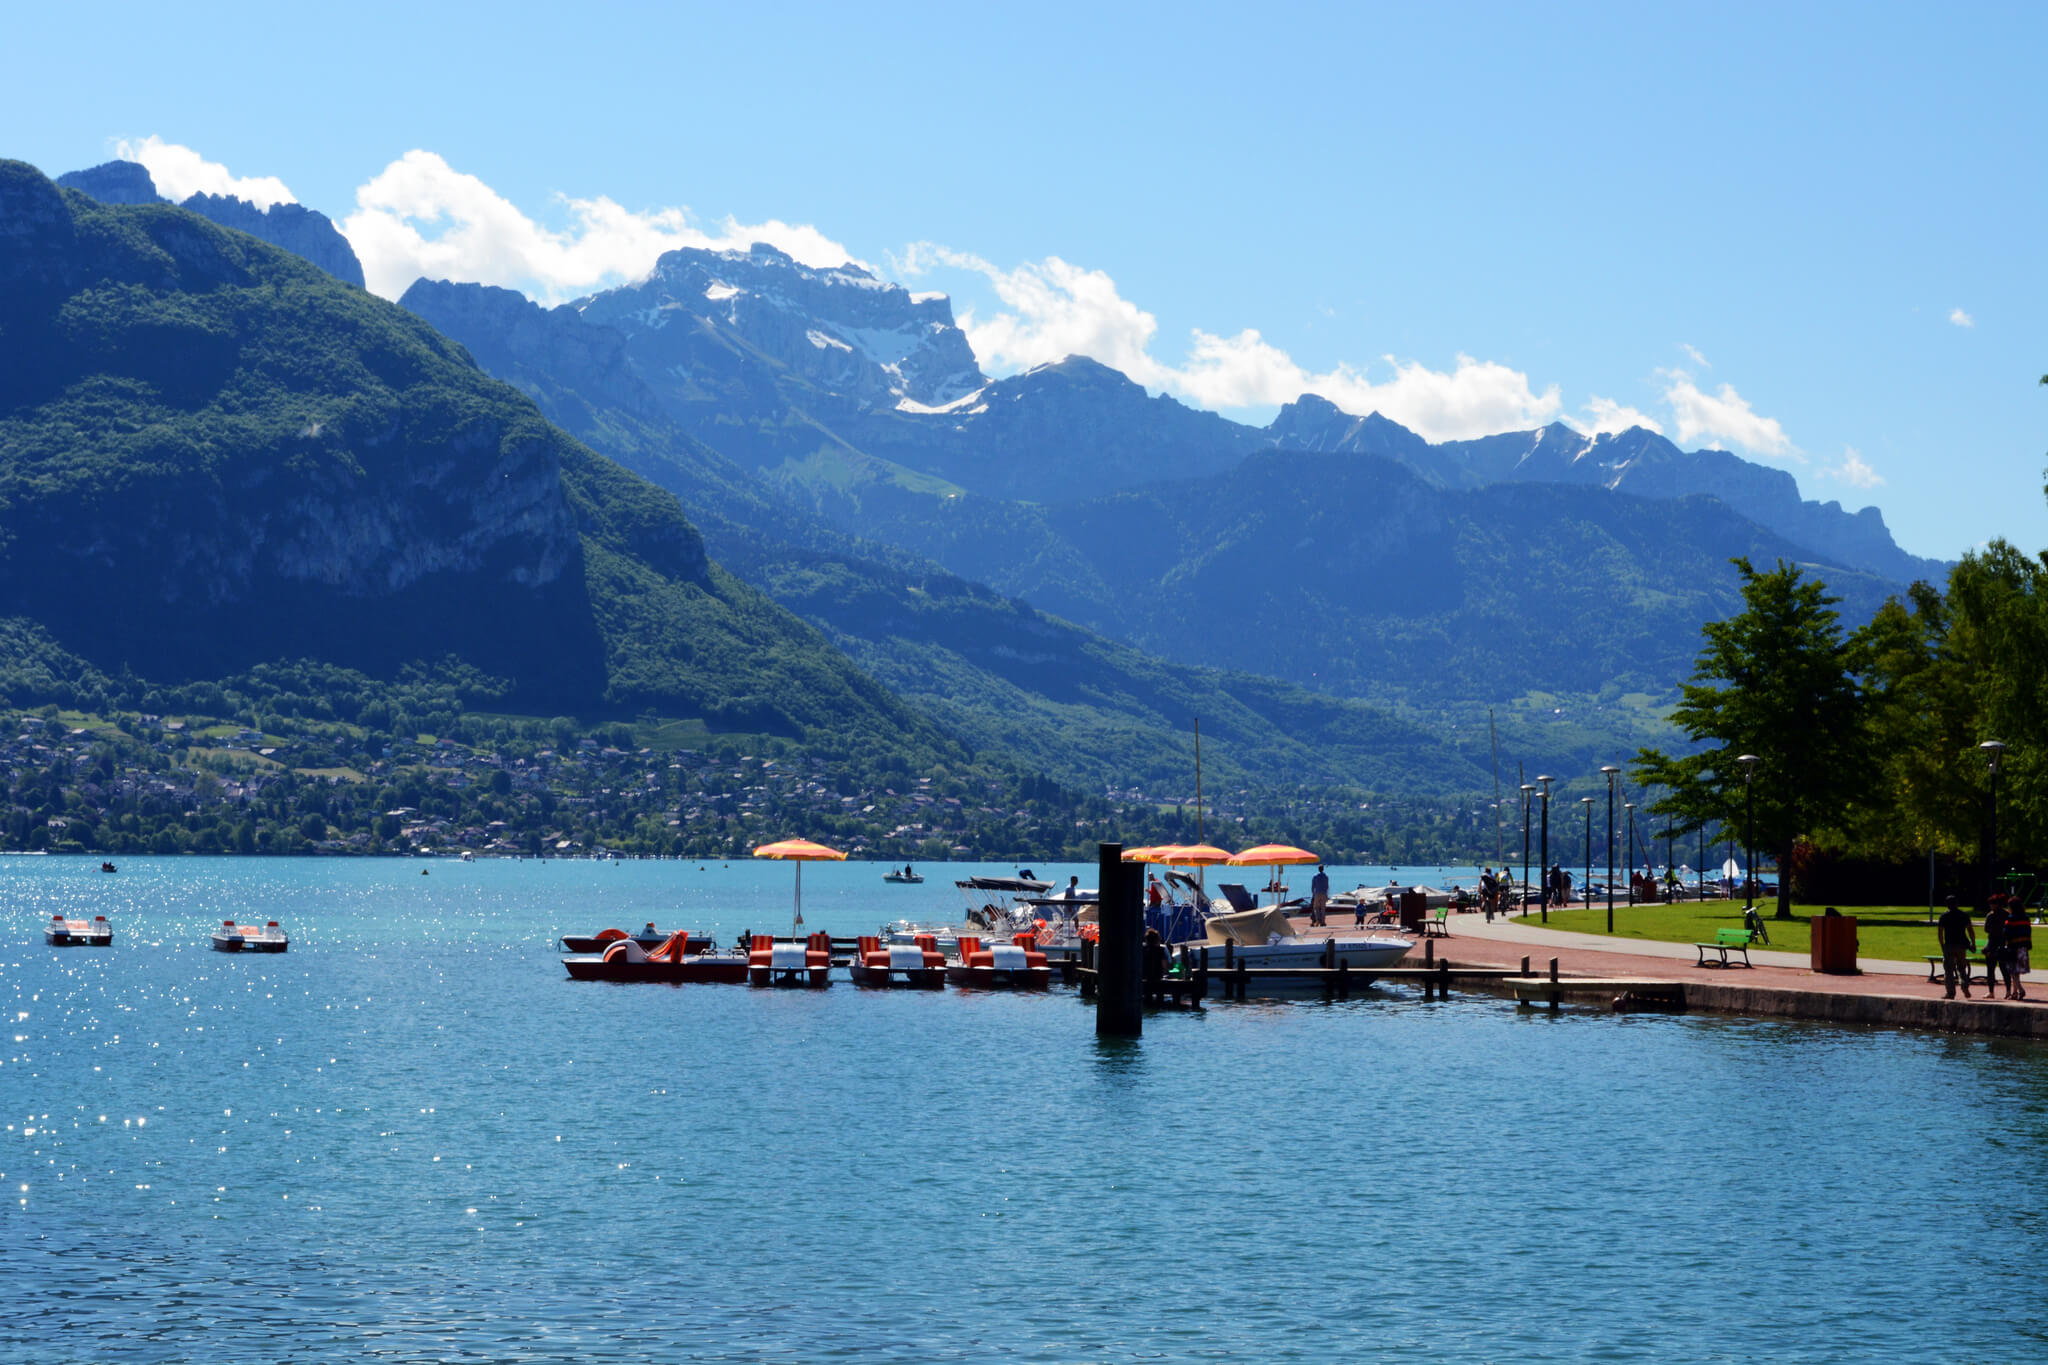 Lake Annecy. Taken by Pug girl via Flickr.